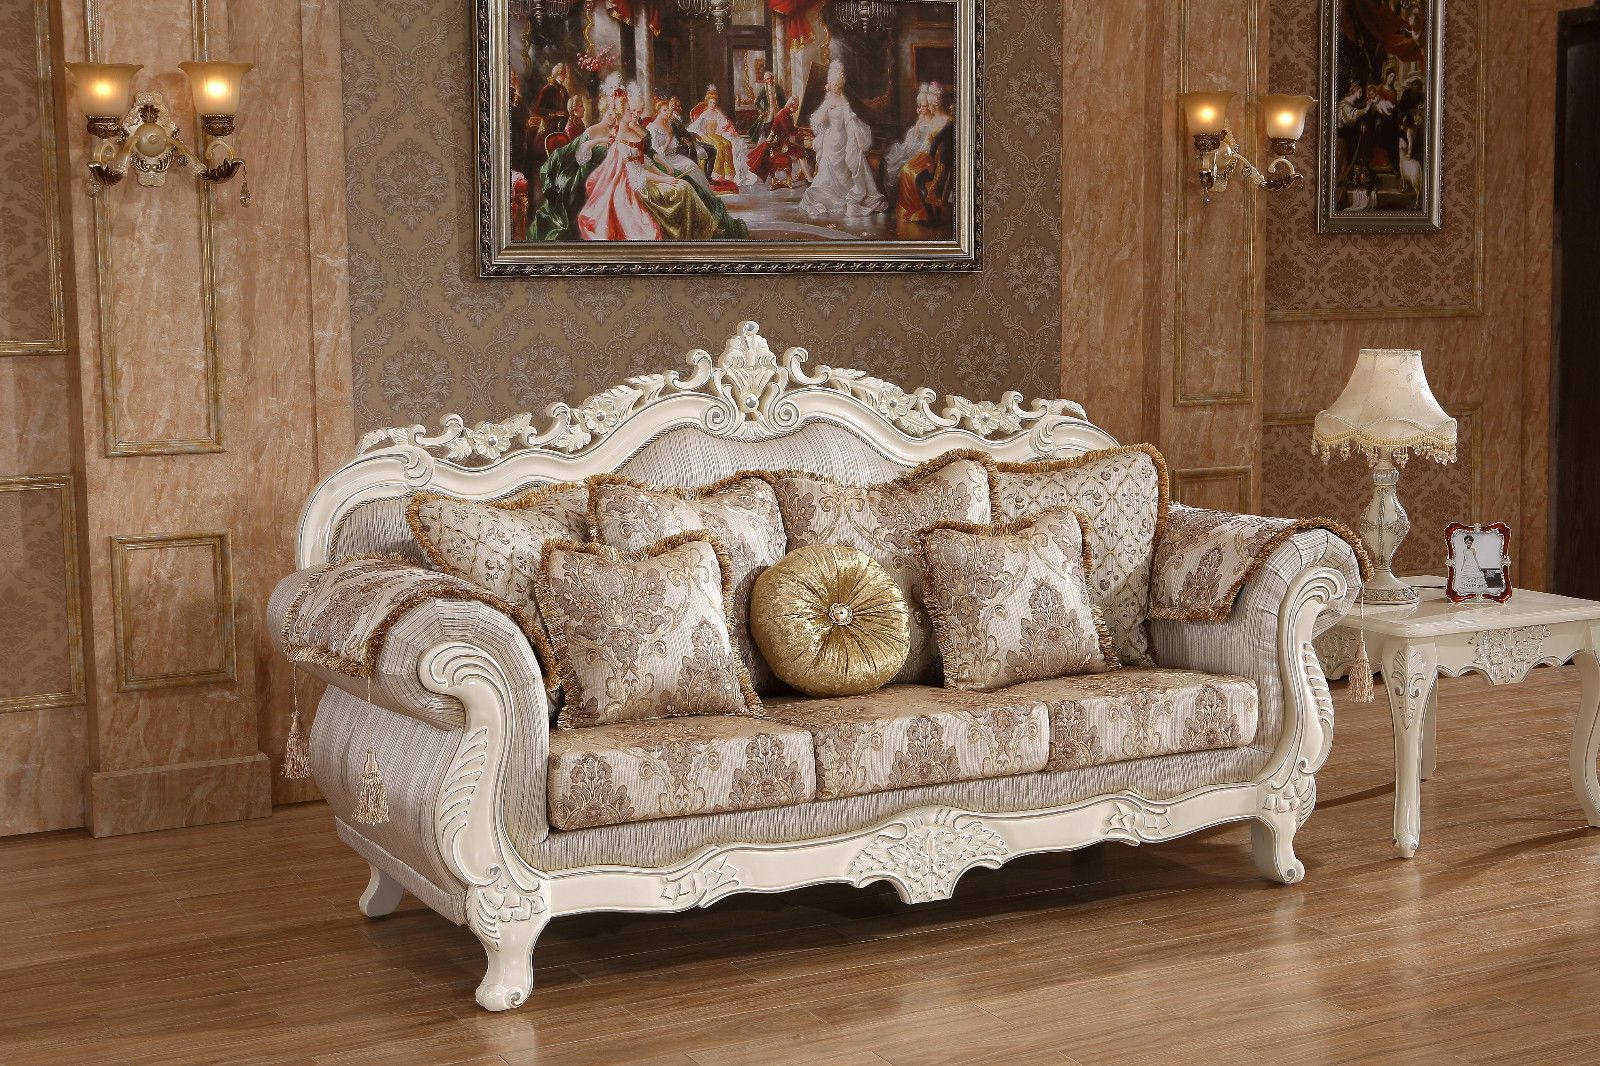 Meridian 691 Living Room Sofa Set 3pc. Upholstery Pearl White Traditional Style